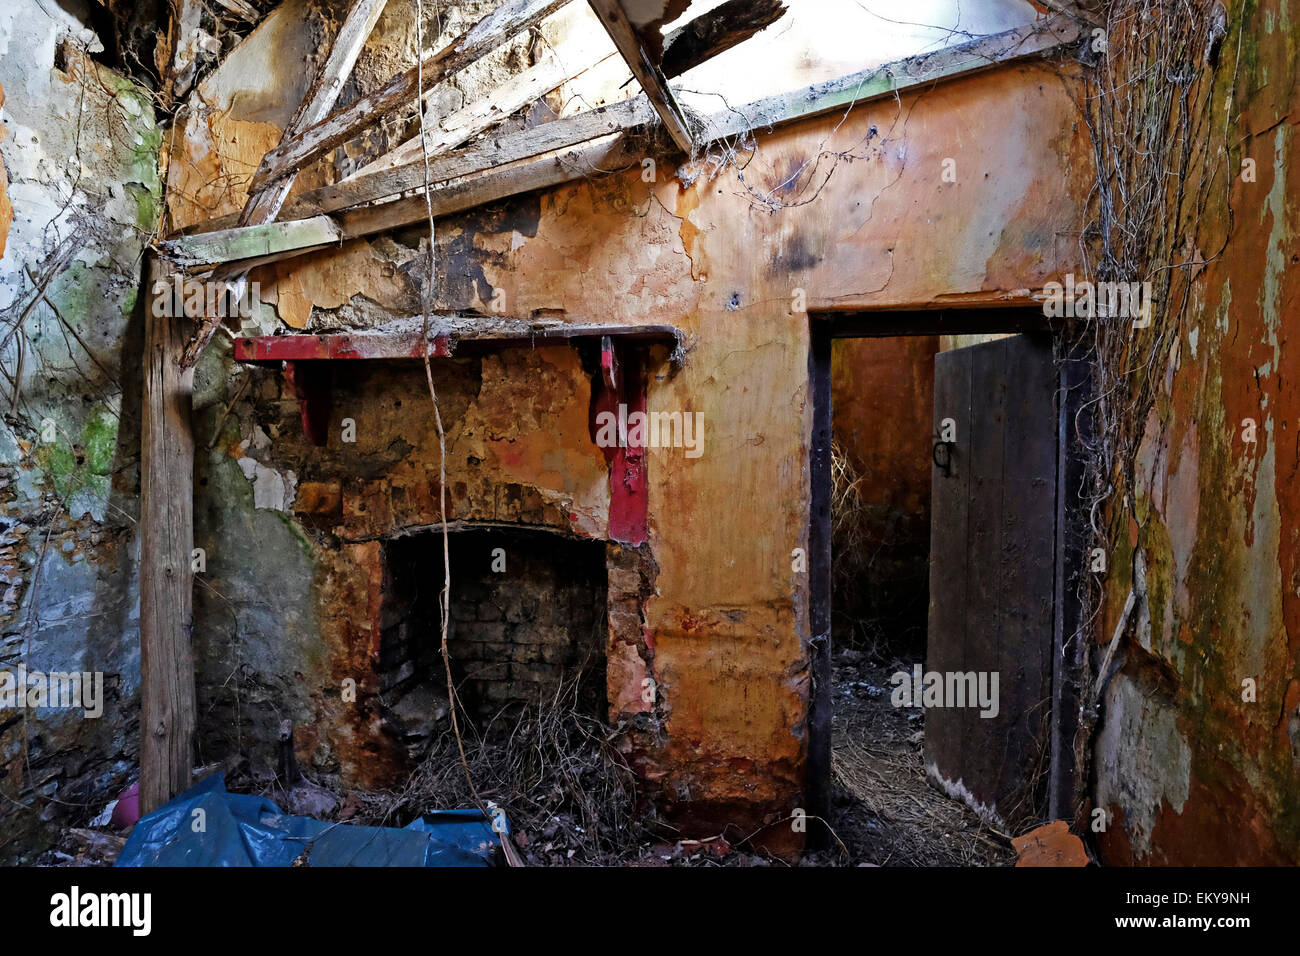 The ruined and Shabby interior of old abandoned gate lodge house in west Cork Ireland - Stock Image